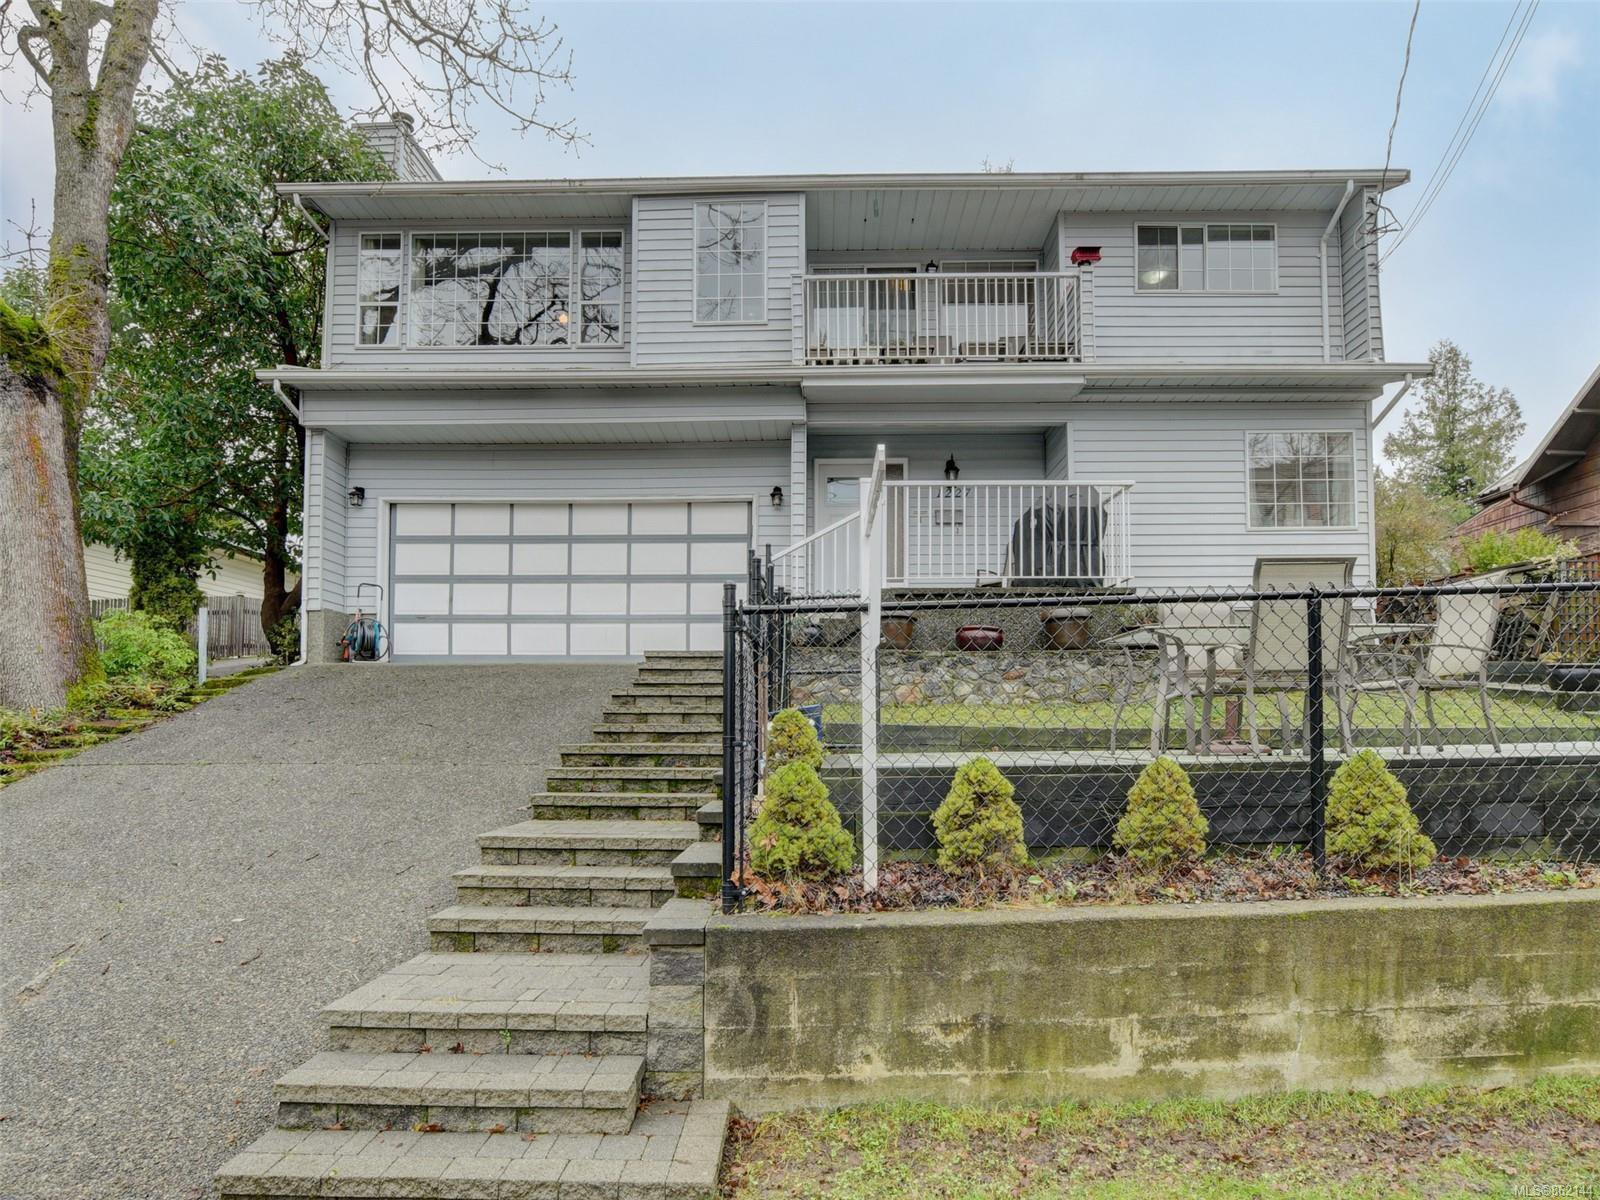 Main Photo: 1227 Carlisle Ave in : Es Saxe Point Half Duplex for sale (Esquimalt)  : MLS®# 862144